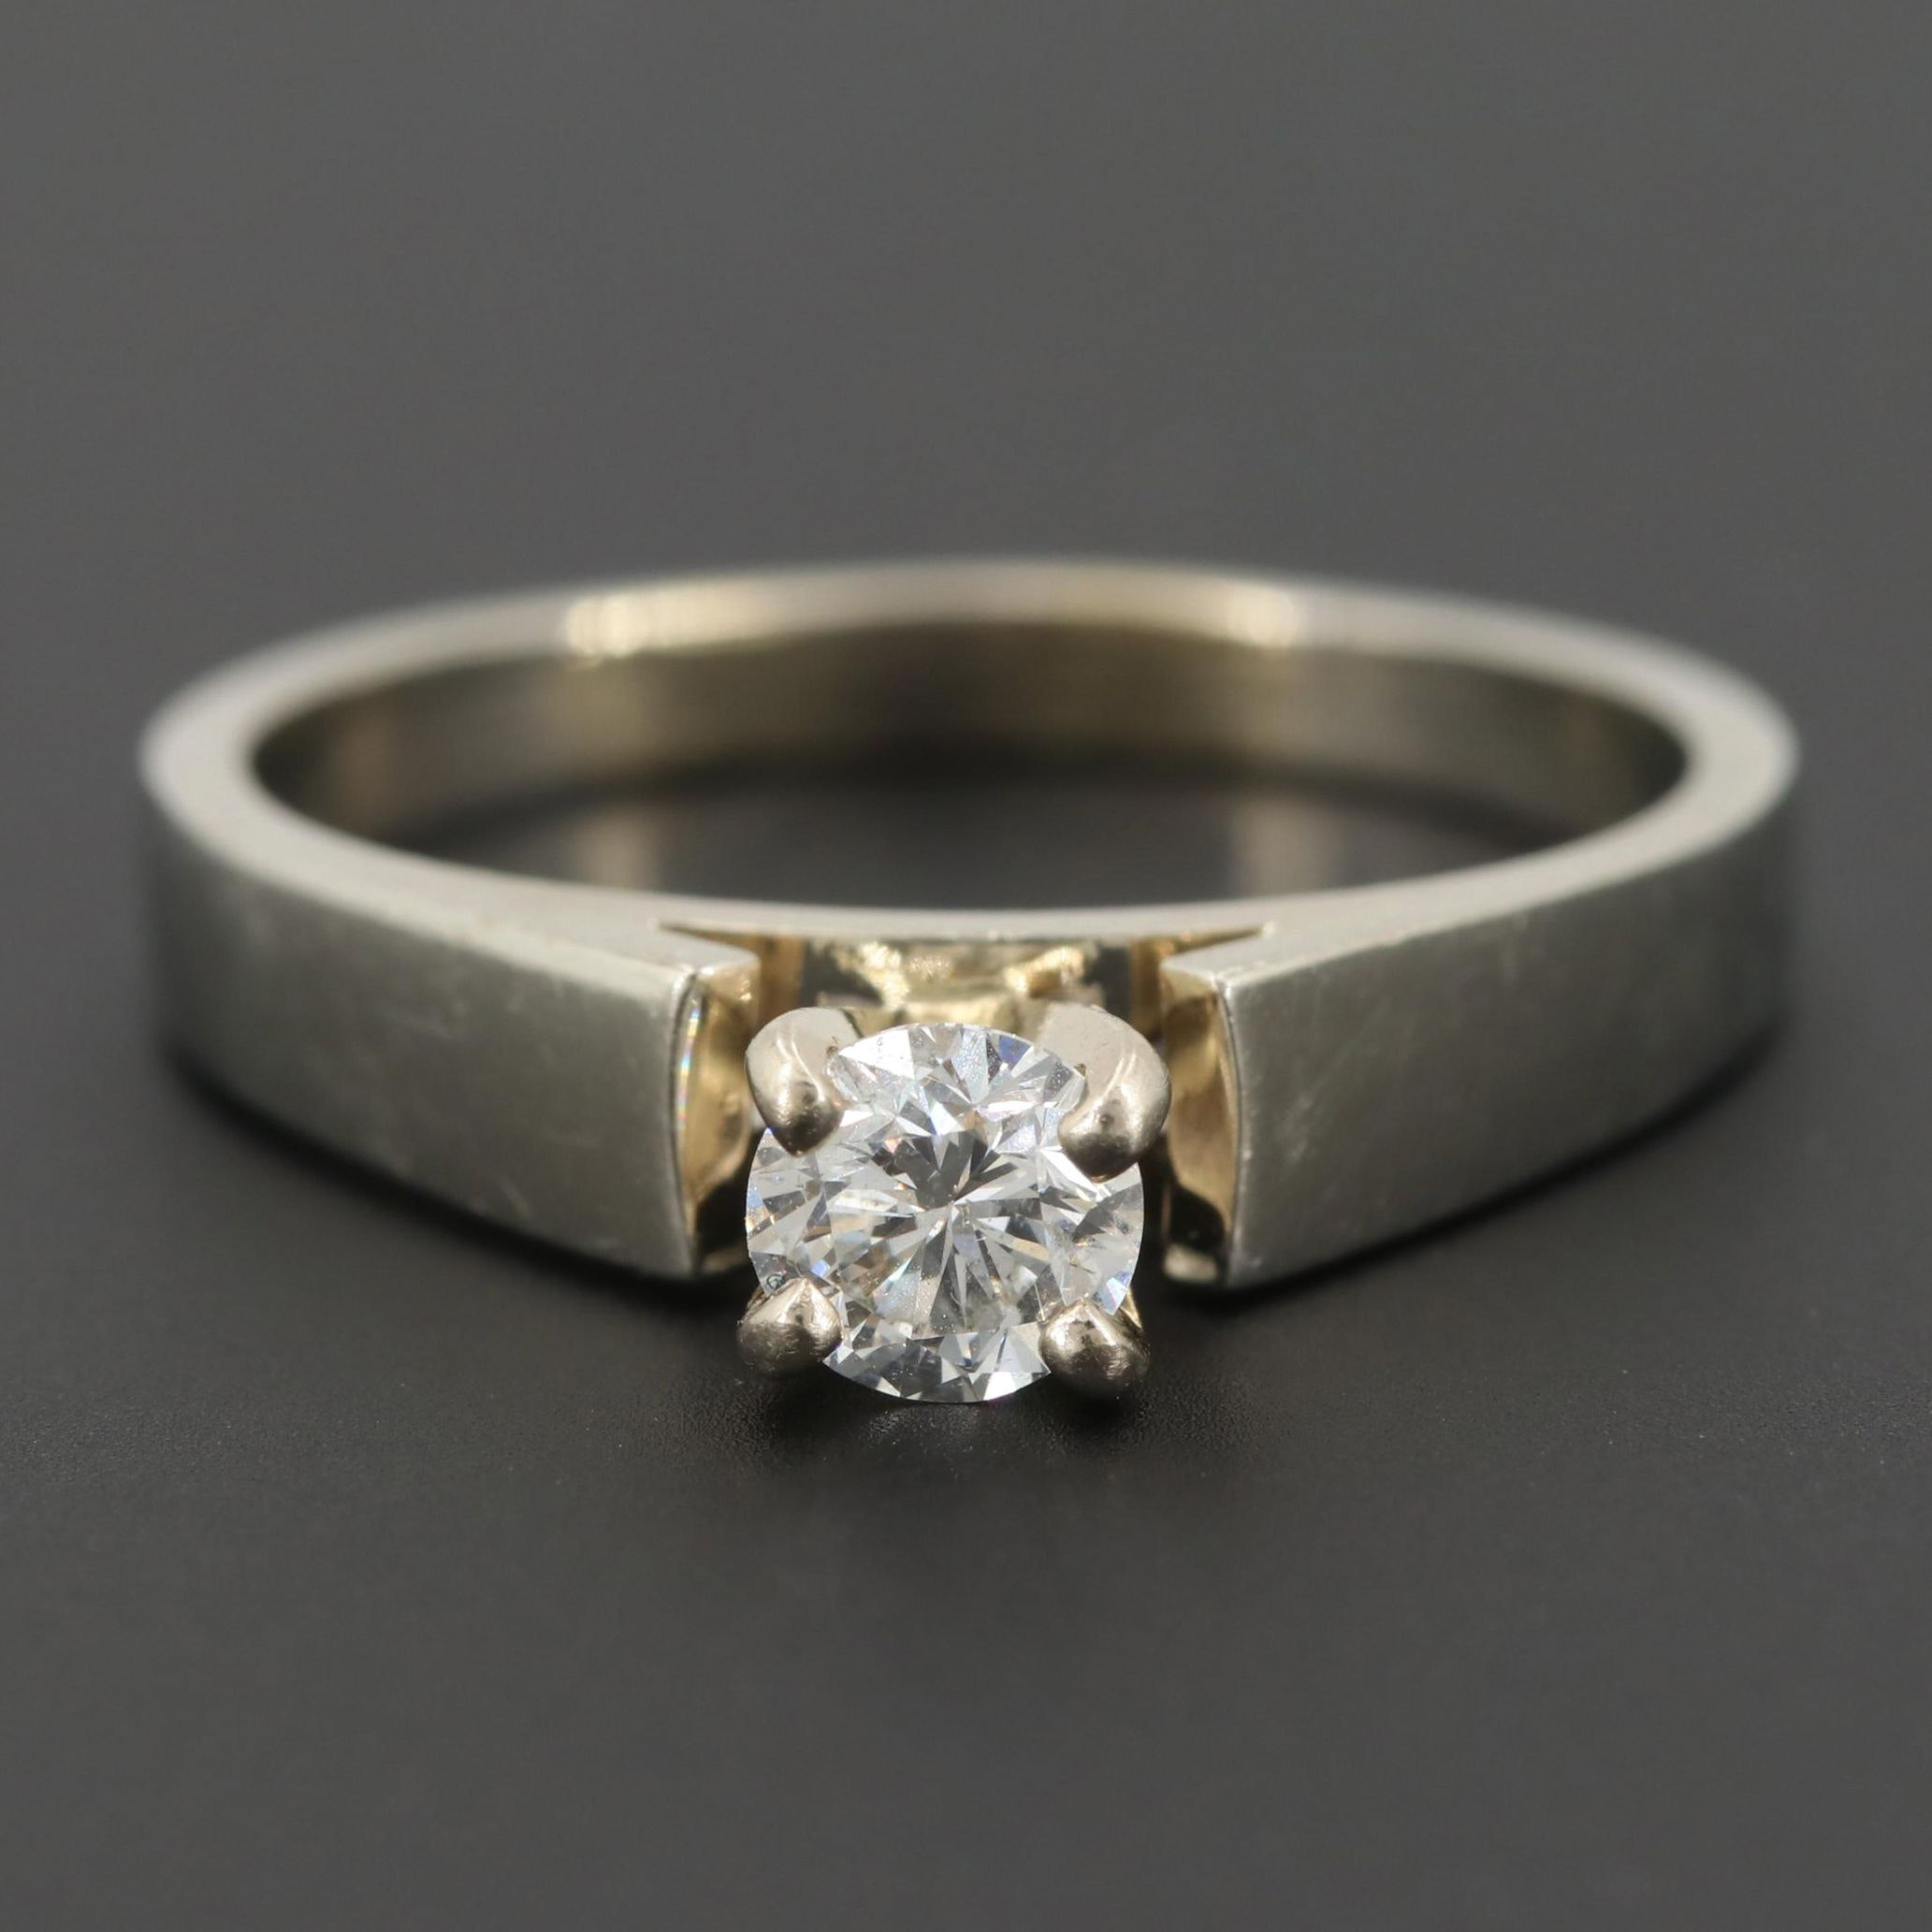 14K White Gold Diamond Solitaire Ring with 14K Yellow Gold